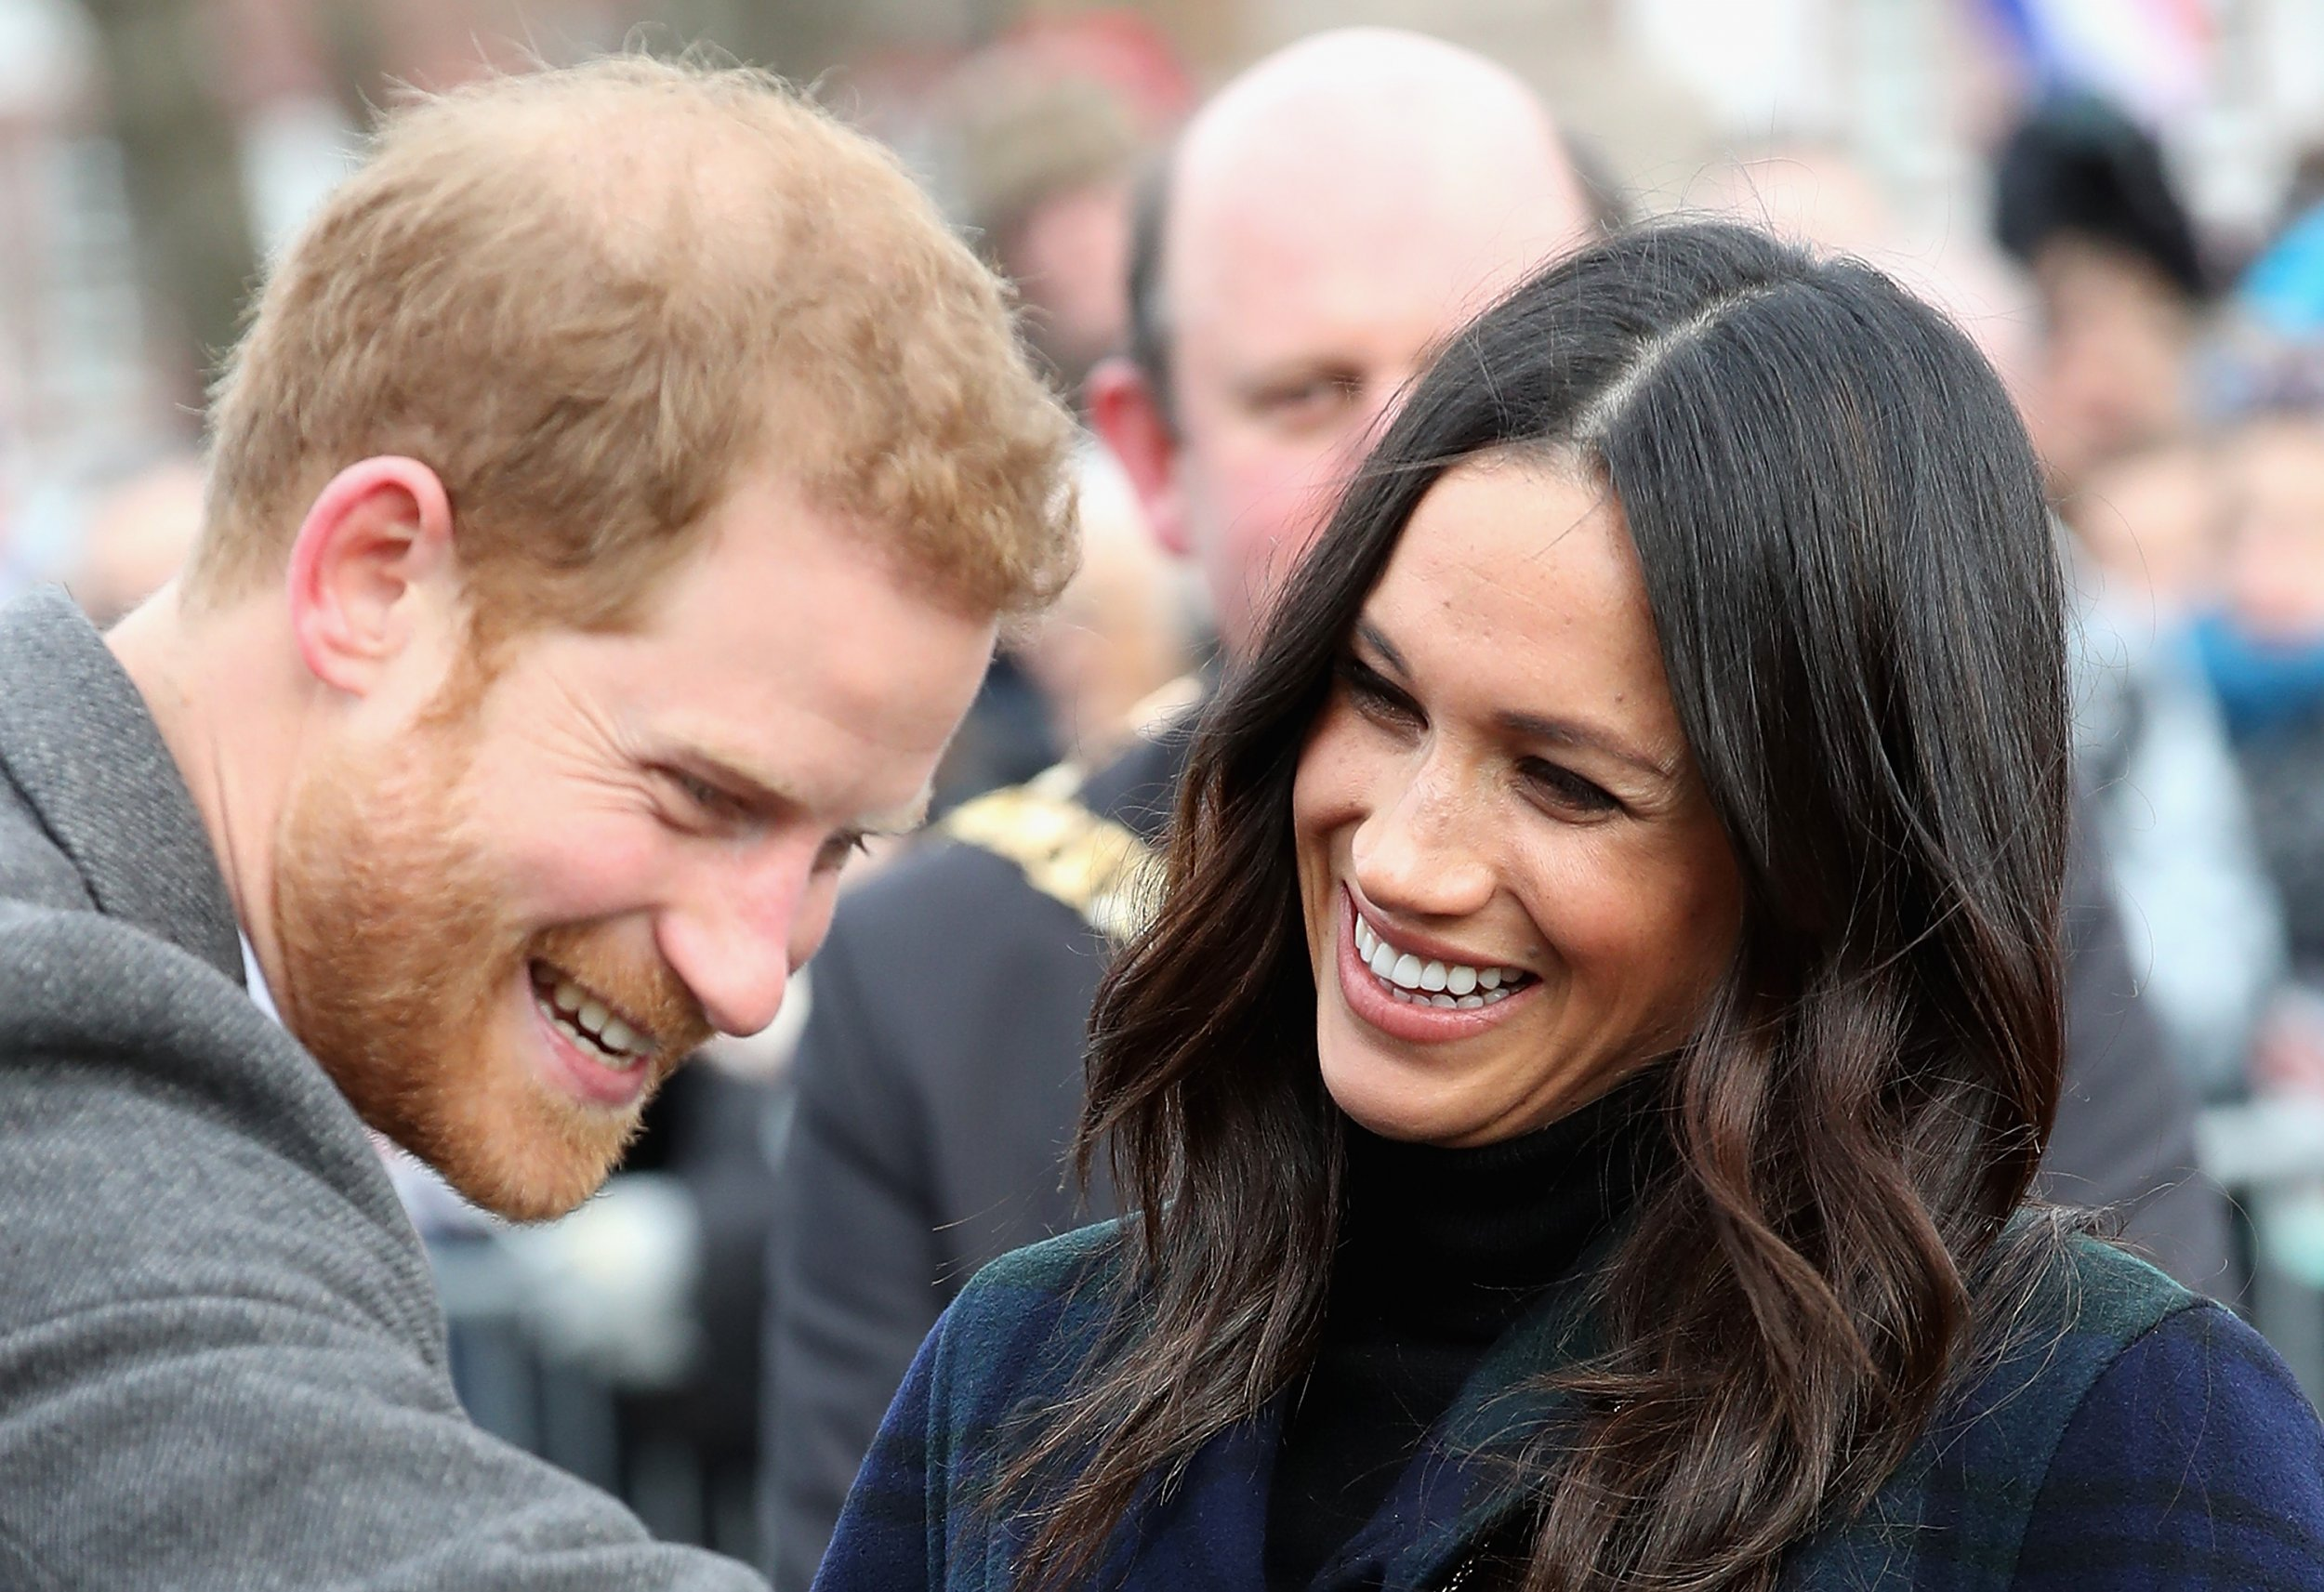 Prince Harry and Meghan Markle reveal new wedding details